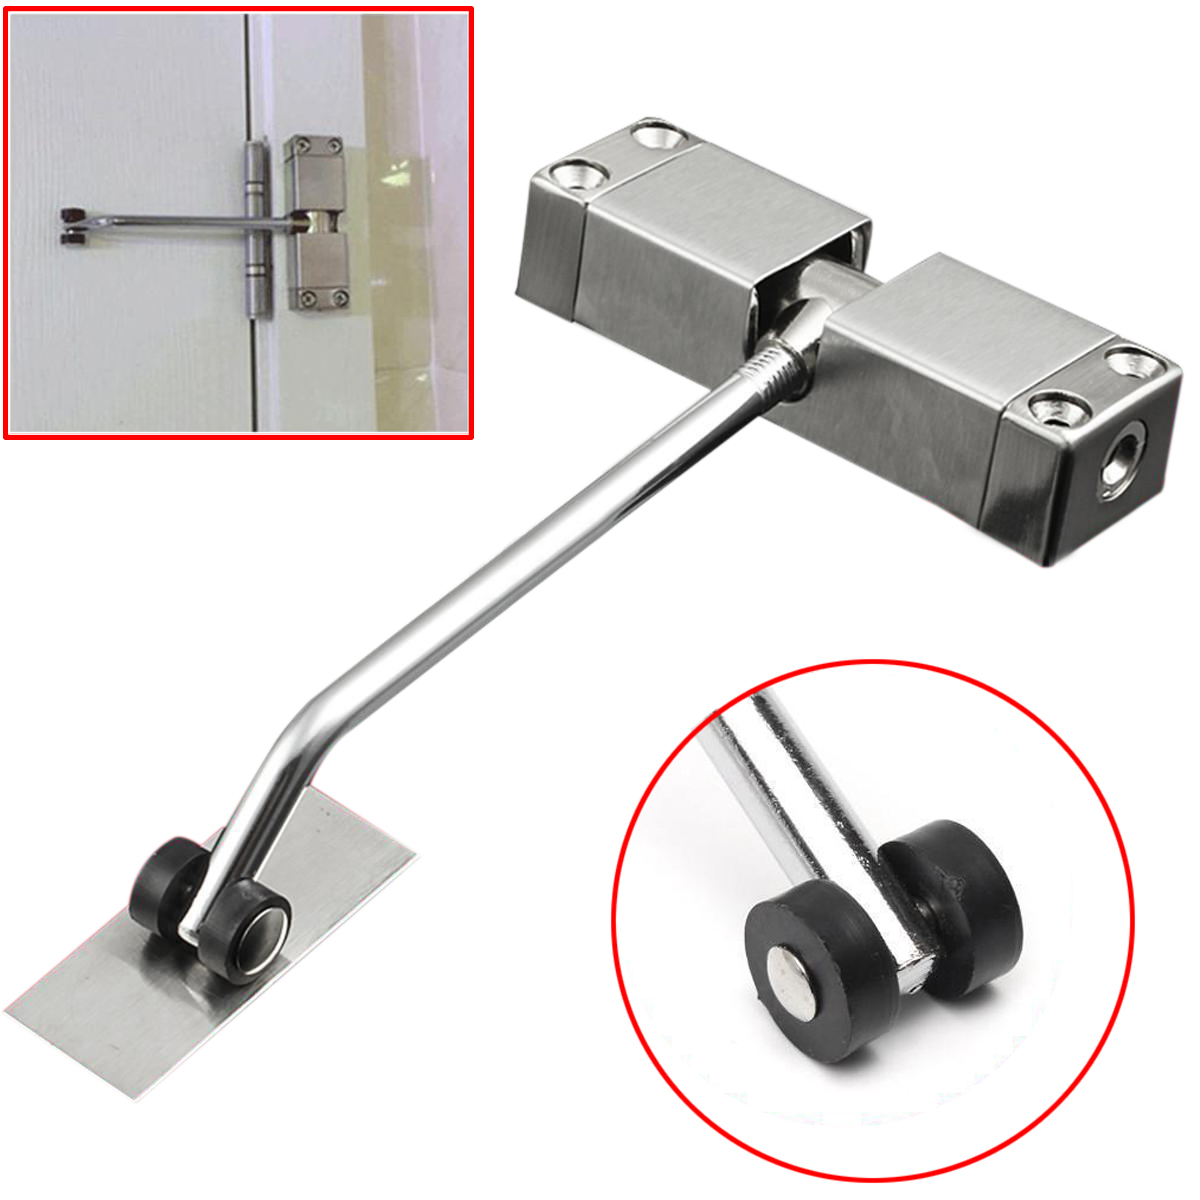 цена на 1 PCS Hot Sale Automatic Mounted Spring Door Closer Stainless Steel Adjustable Surface Door Closer Simple 160x96x20mm